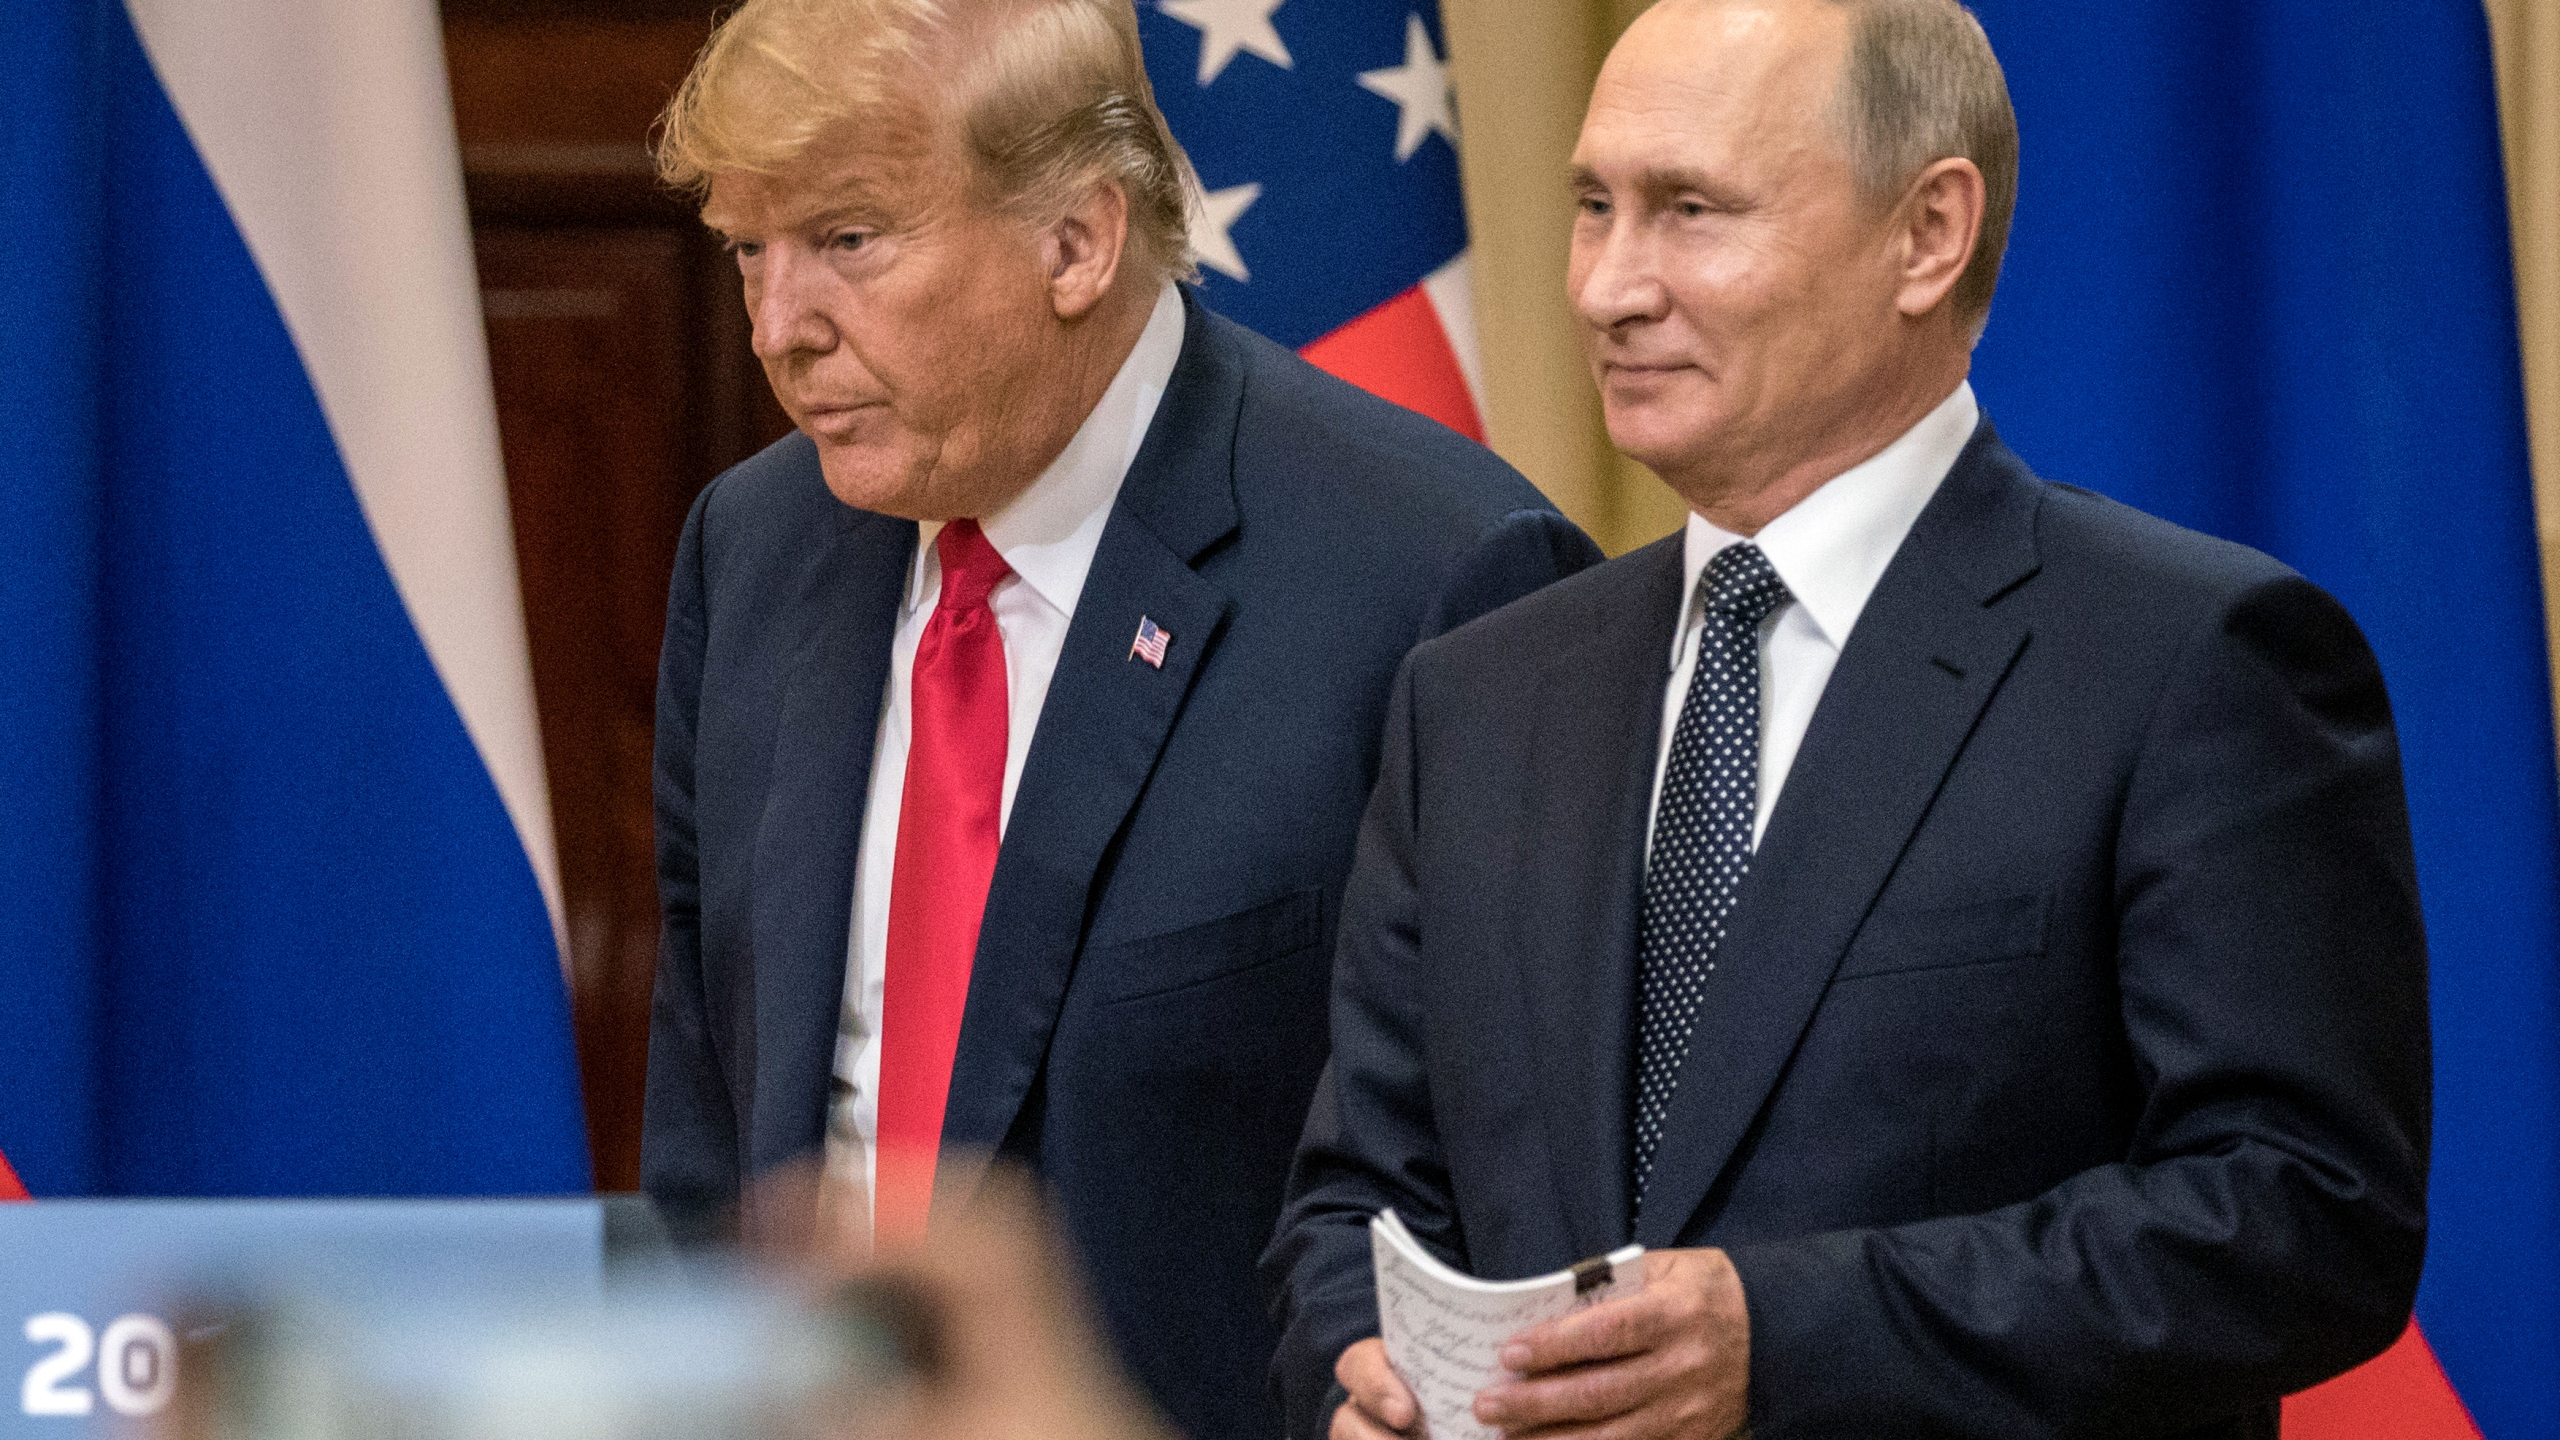 U.S. President Donald Trump, left, and Russian President Vladimir Putin arrive to waiting media during a joint press conference after their summit on July 16, 2018, in Helsinki, Finland. (Credit: Chris McGrath/Getty Images)